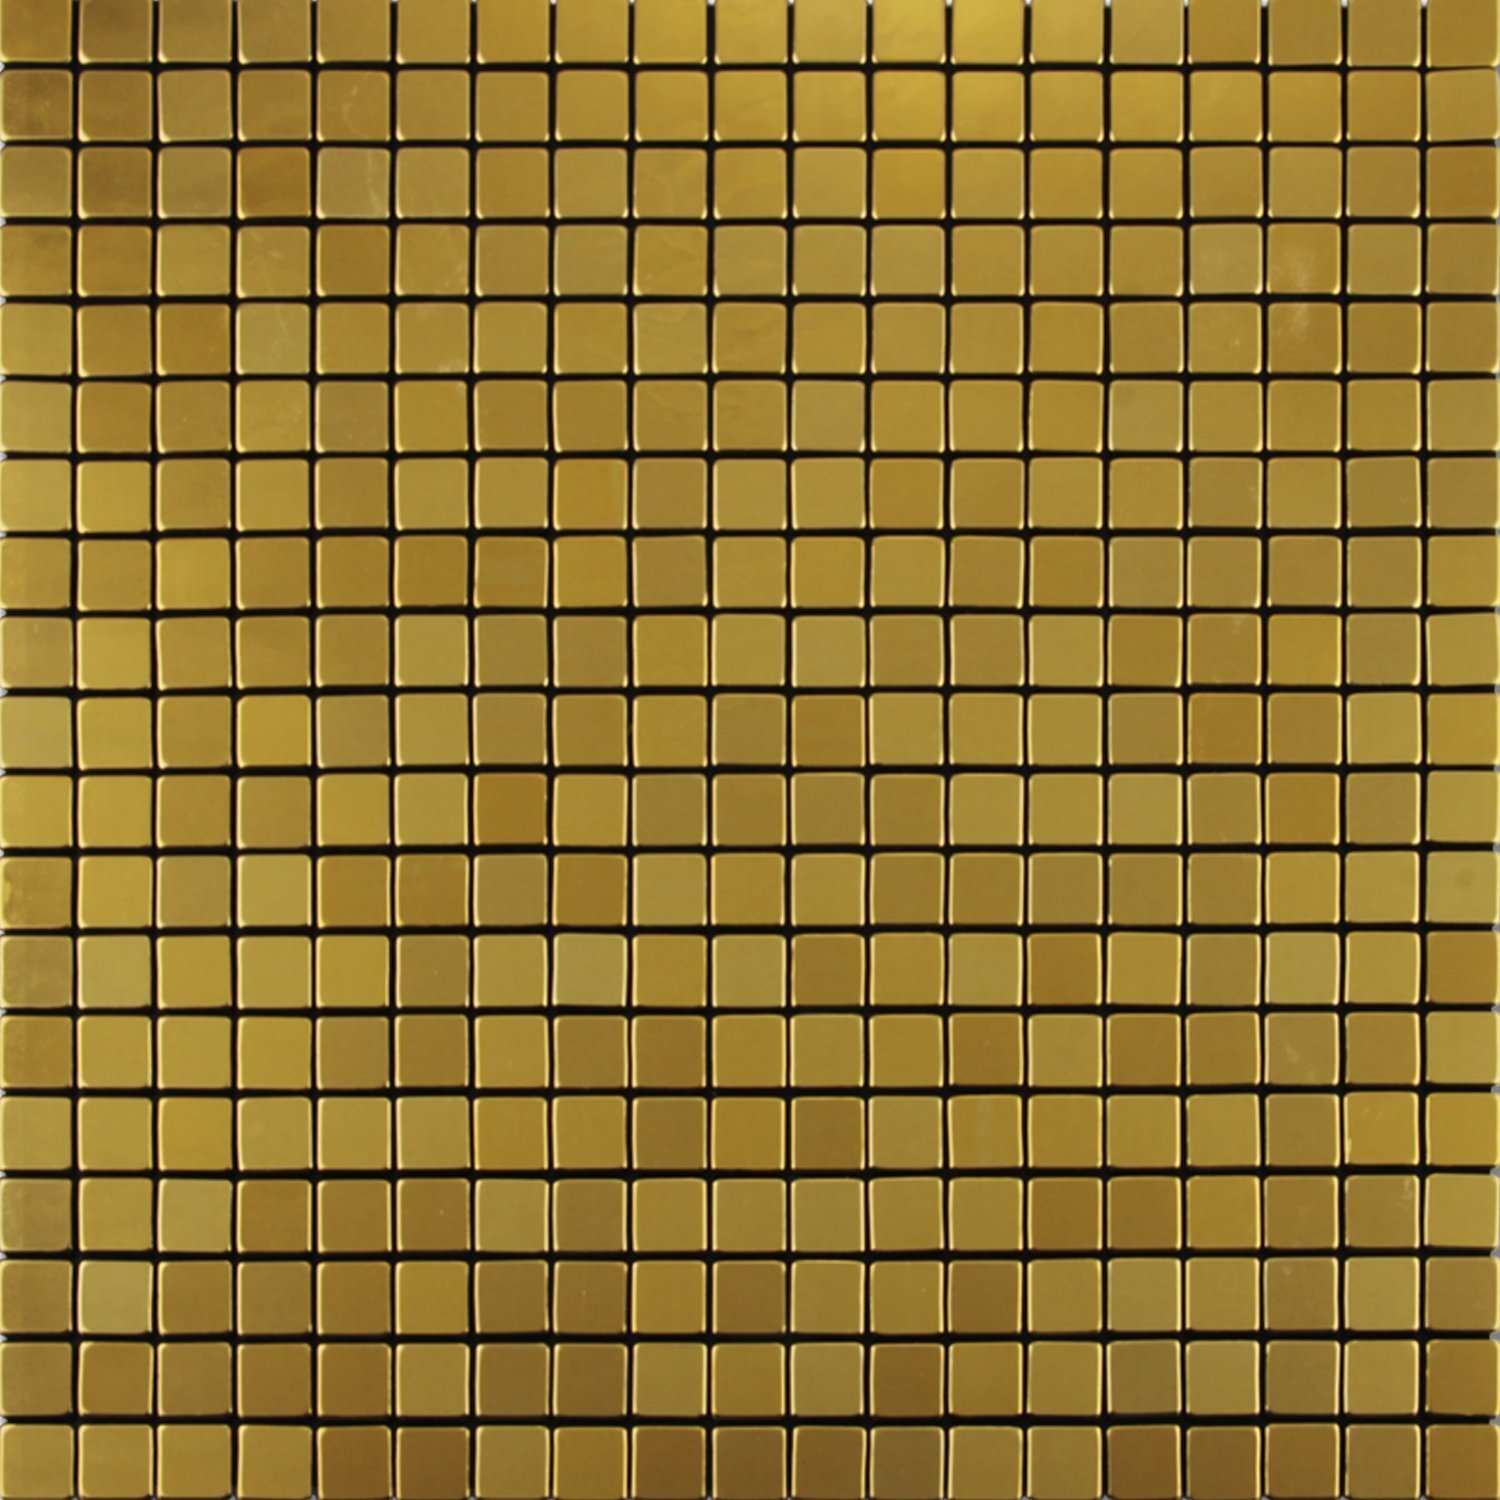 Cheap 300x600mm Decorative Wall Tiles, find 300x600mm Decorative ...